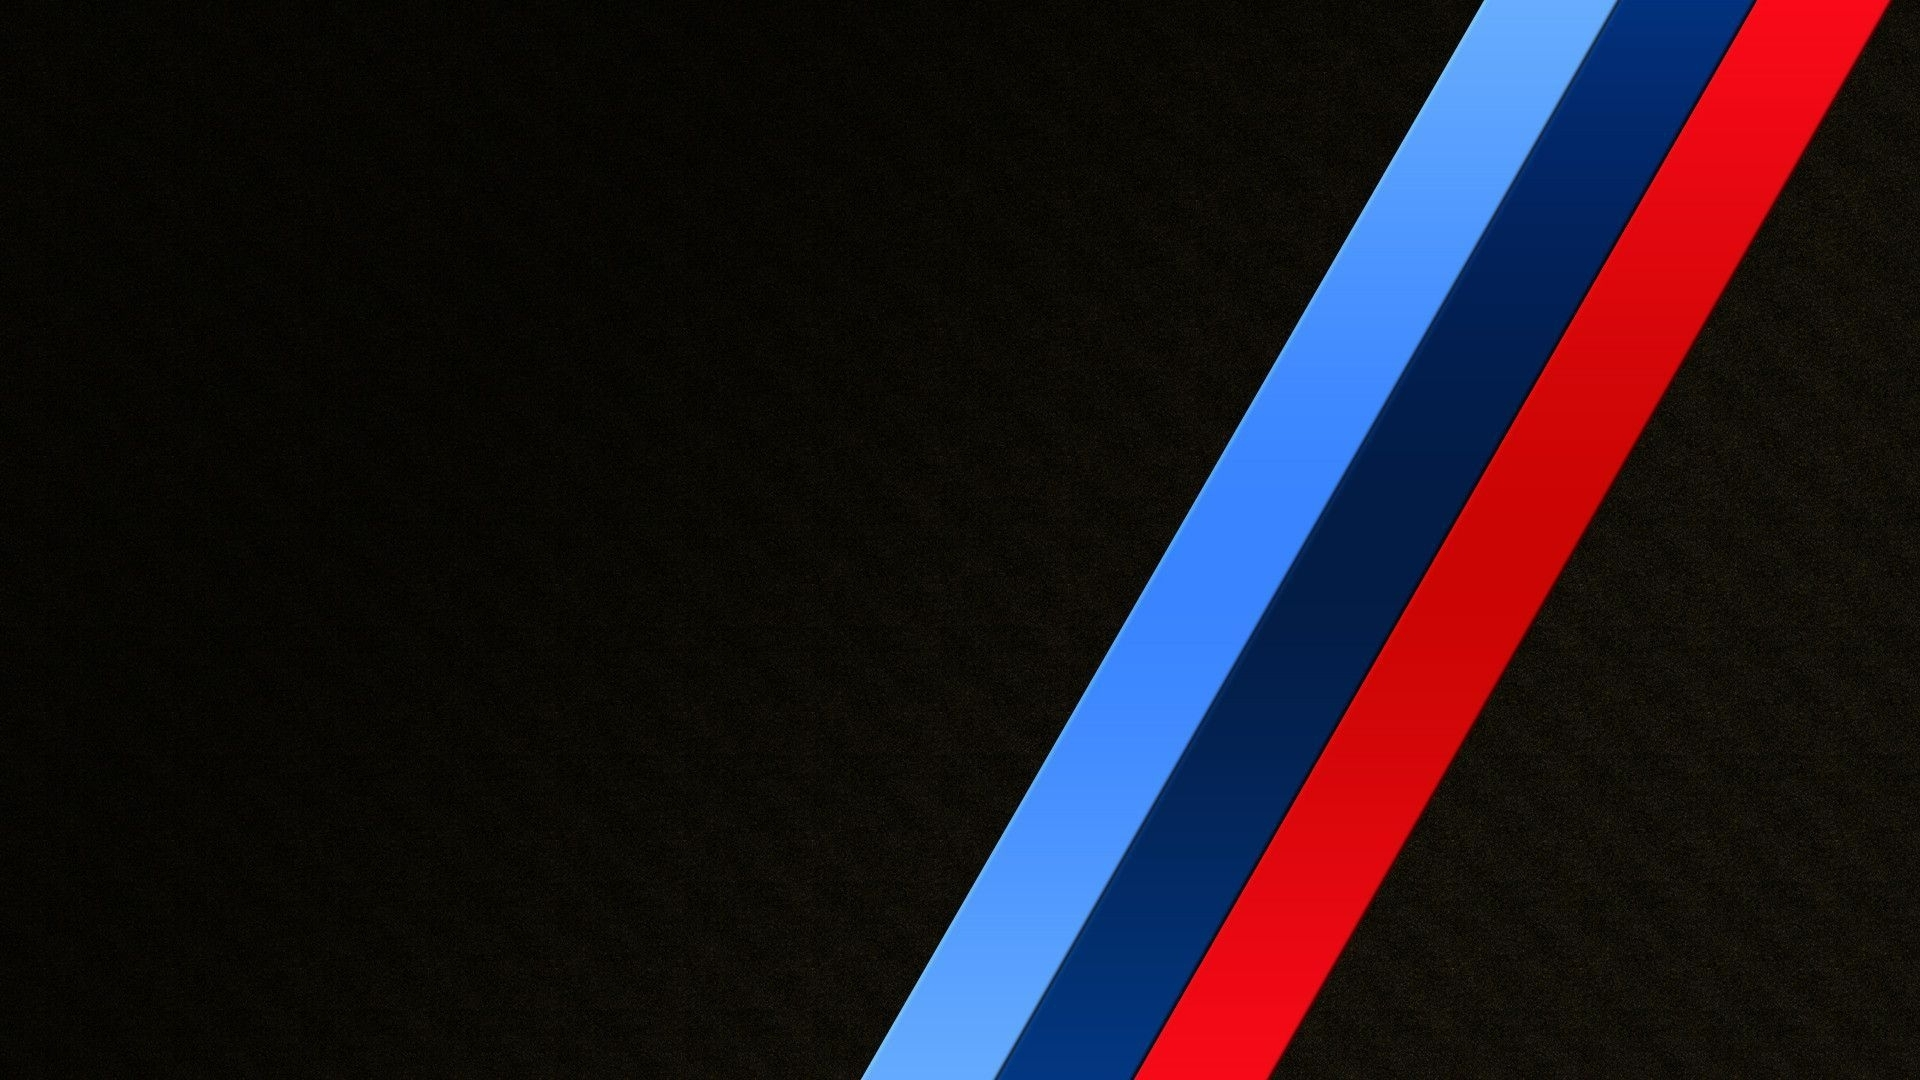 bmw m wallpaper collection (71+)